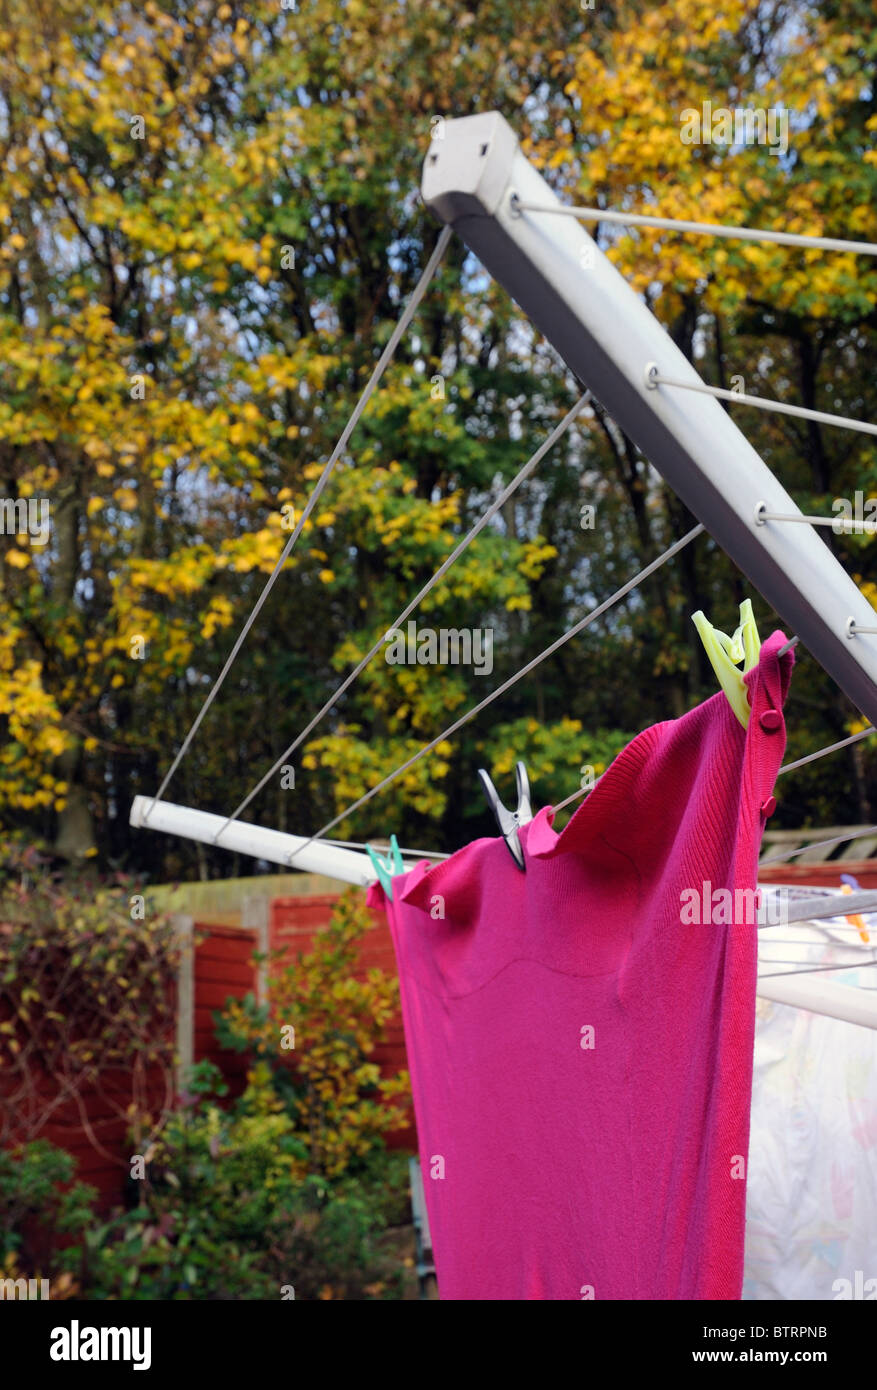 pink cardigan on rotary drier - Stock Image